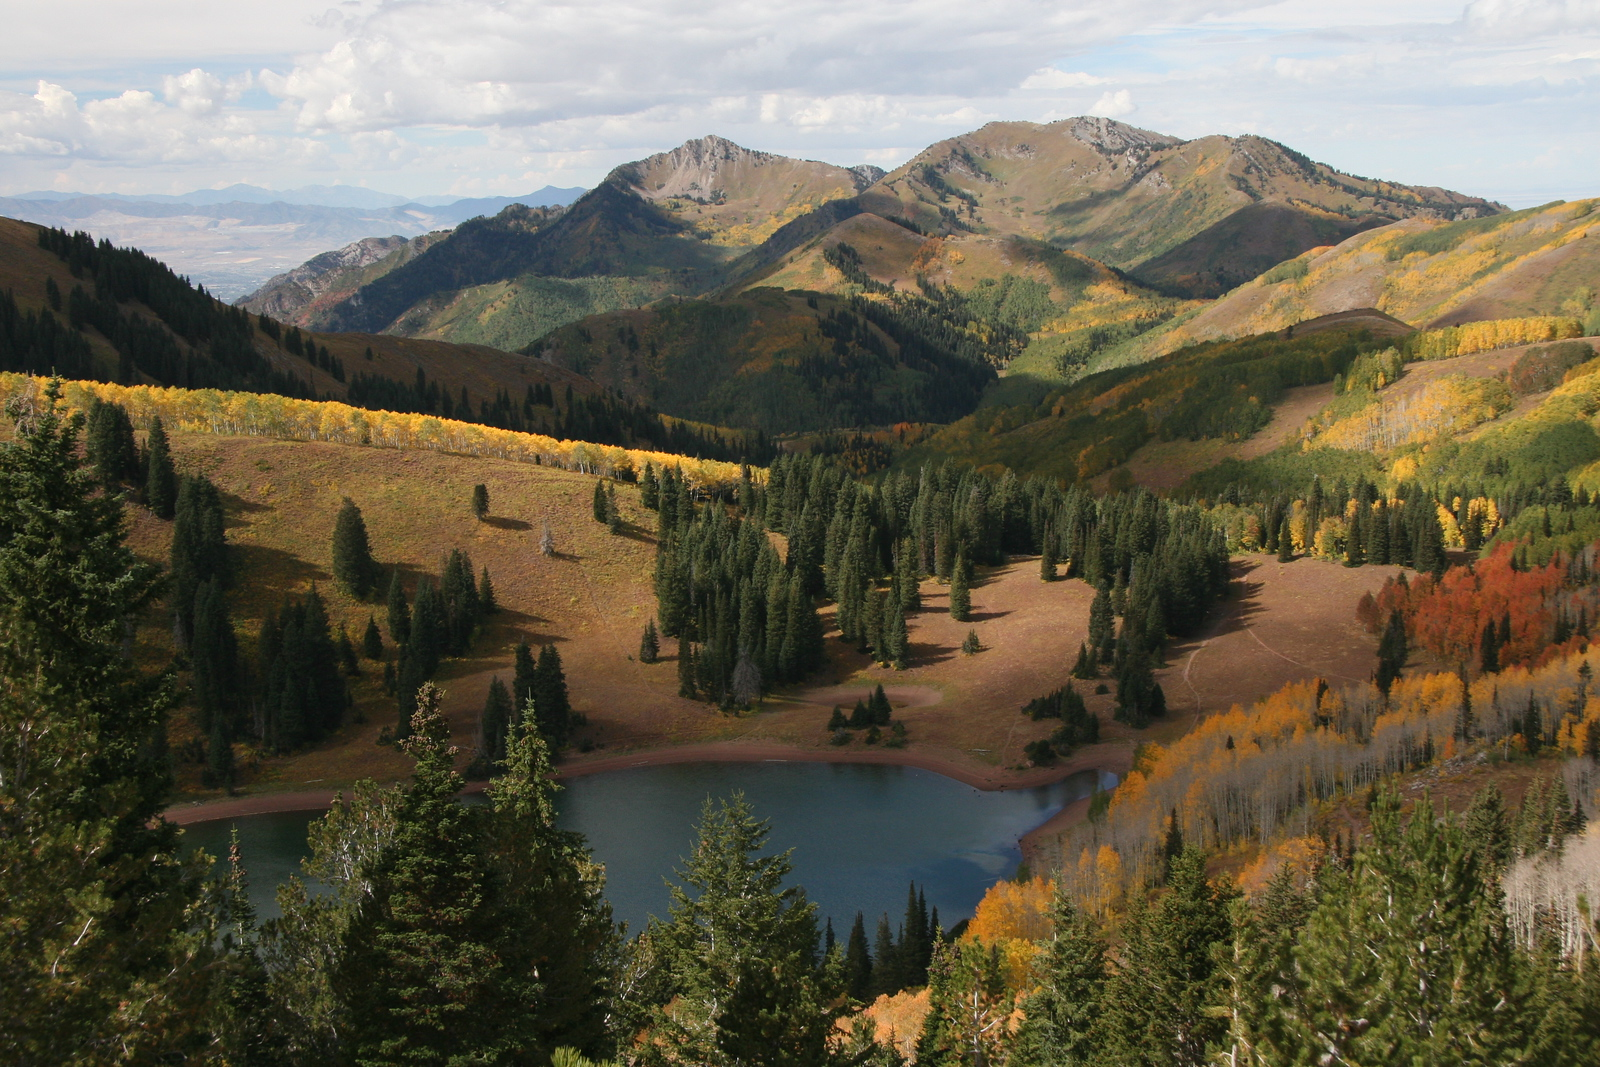 Breathtaking shot of Lake Desolation from the Wasatch Crest Trail.